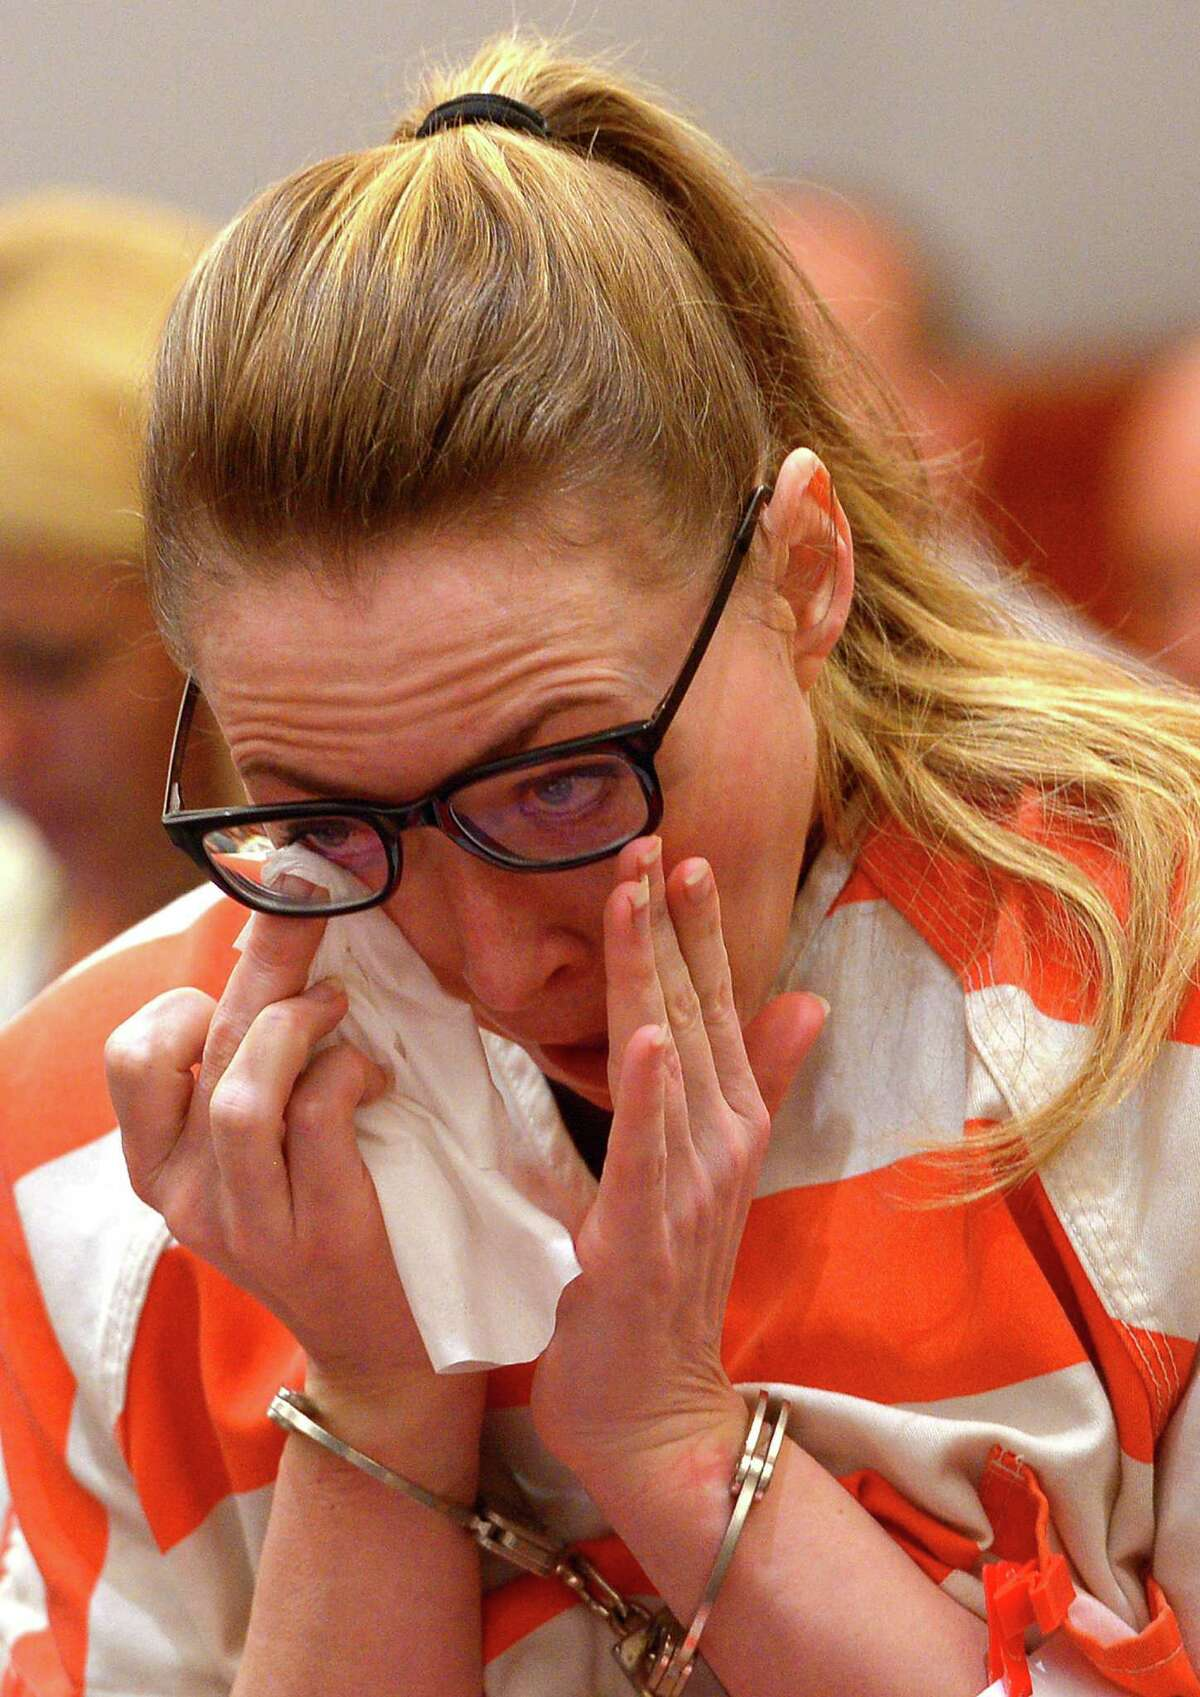 Brianne Altice wipes her eye as she appears in court during her sentencing Thursday, July 9, 2015, in Farmington, Utah. A judge sentenced Altice, a former high school English teacher who pleaded guilty to sexually abusing three male students, to at least two and up to 30 years in prison Thursday. (Leah Hogsten/The Salt Lake Tribune via AP, Pool)